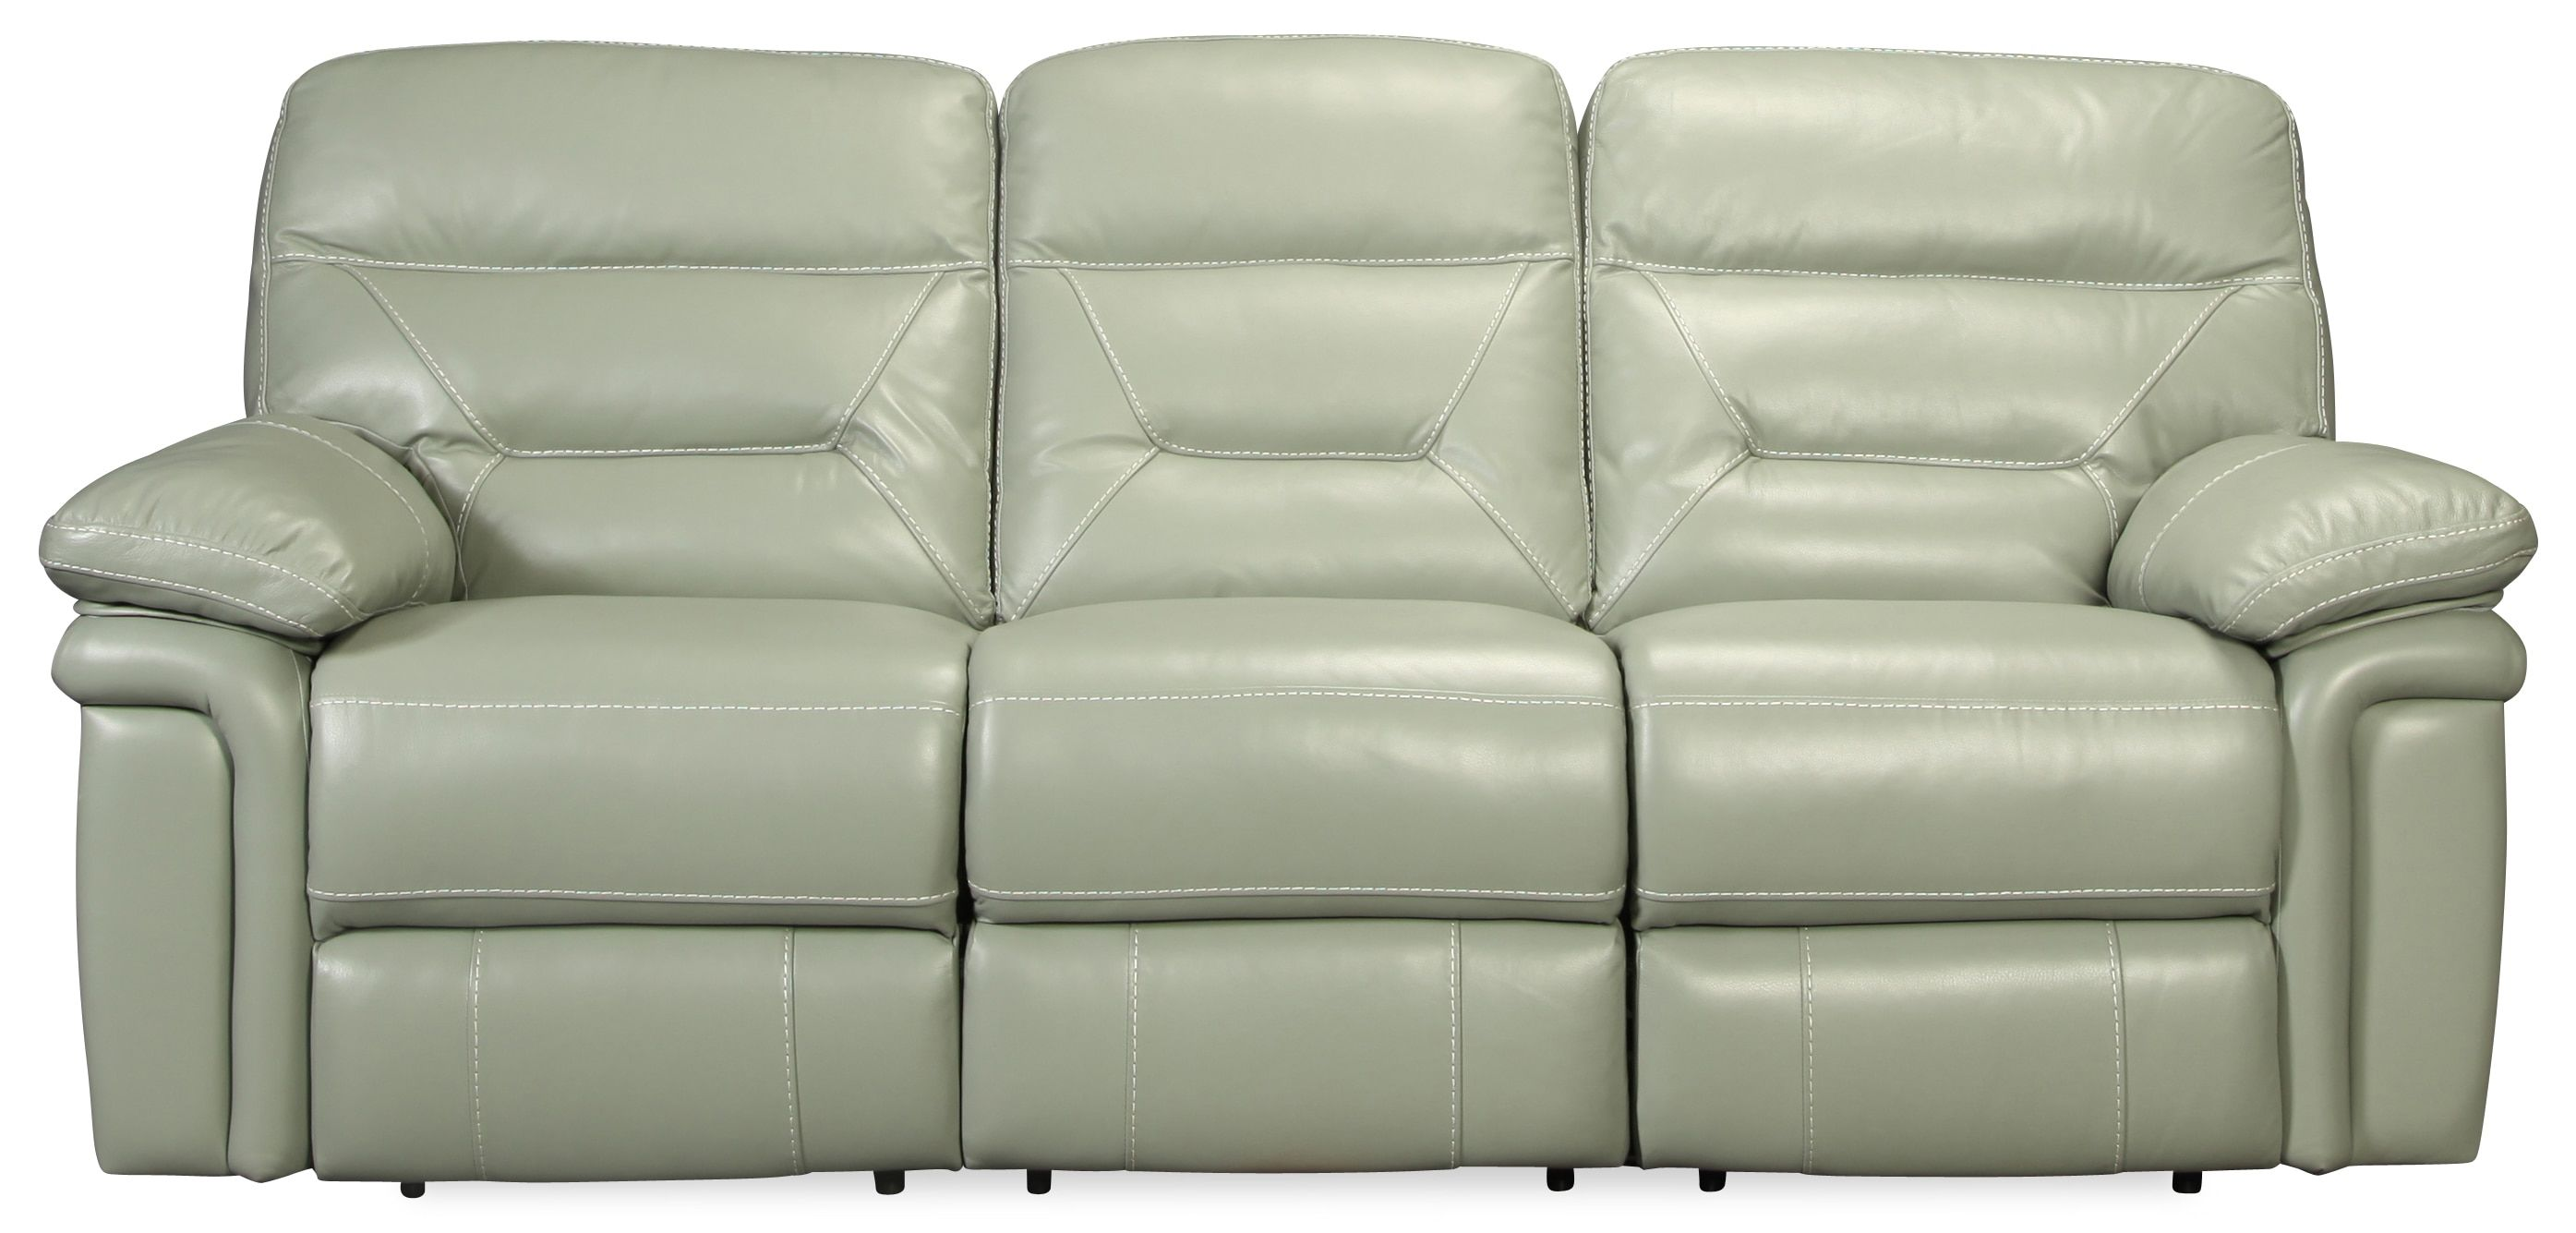 The Clean Lined Piper Power Reclining Sofa Is All Leather And Allows For Close Wall Proximity This Transitional Piece Will Sofa Sofa Furniture Levin Furniture